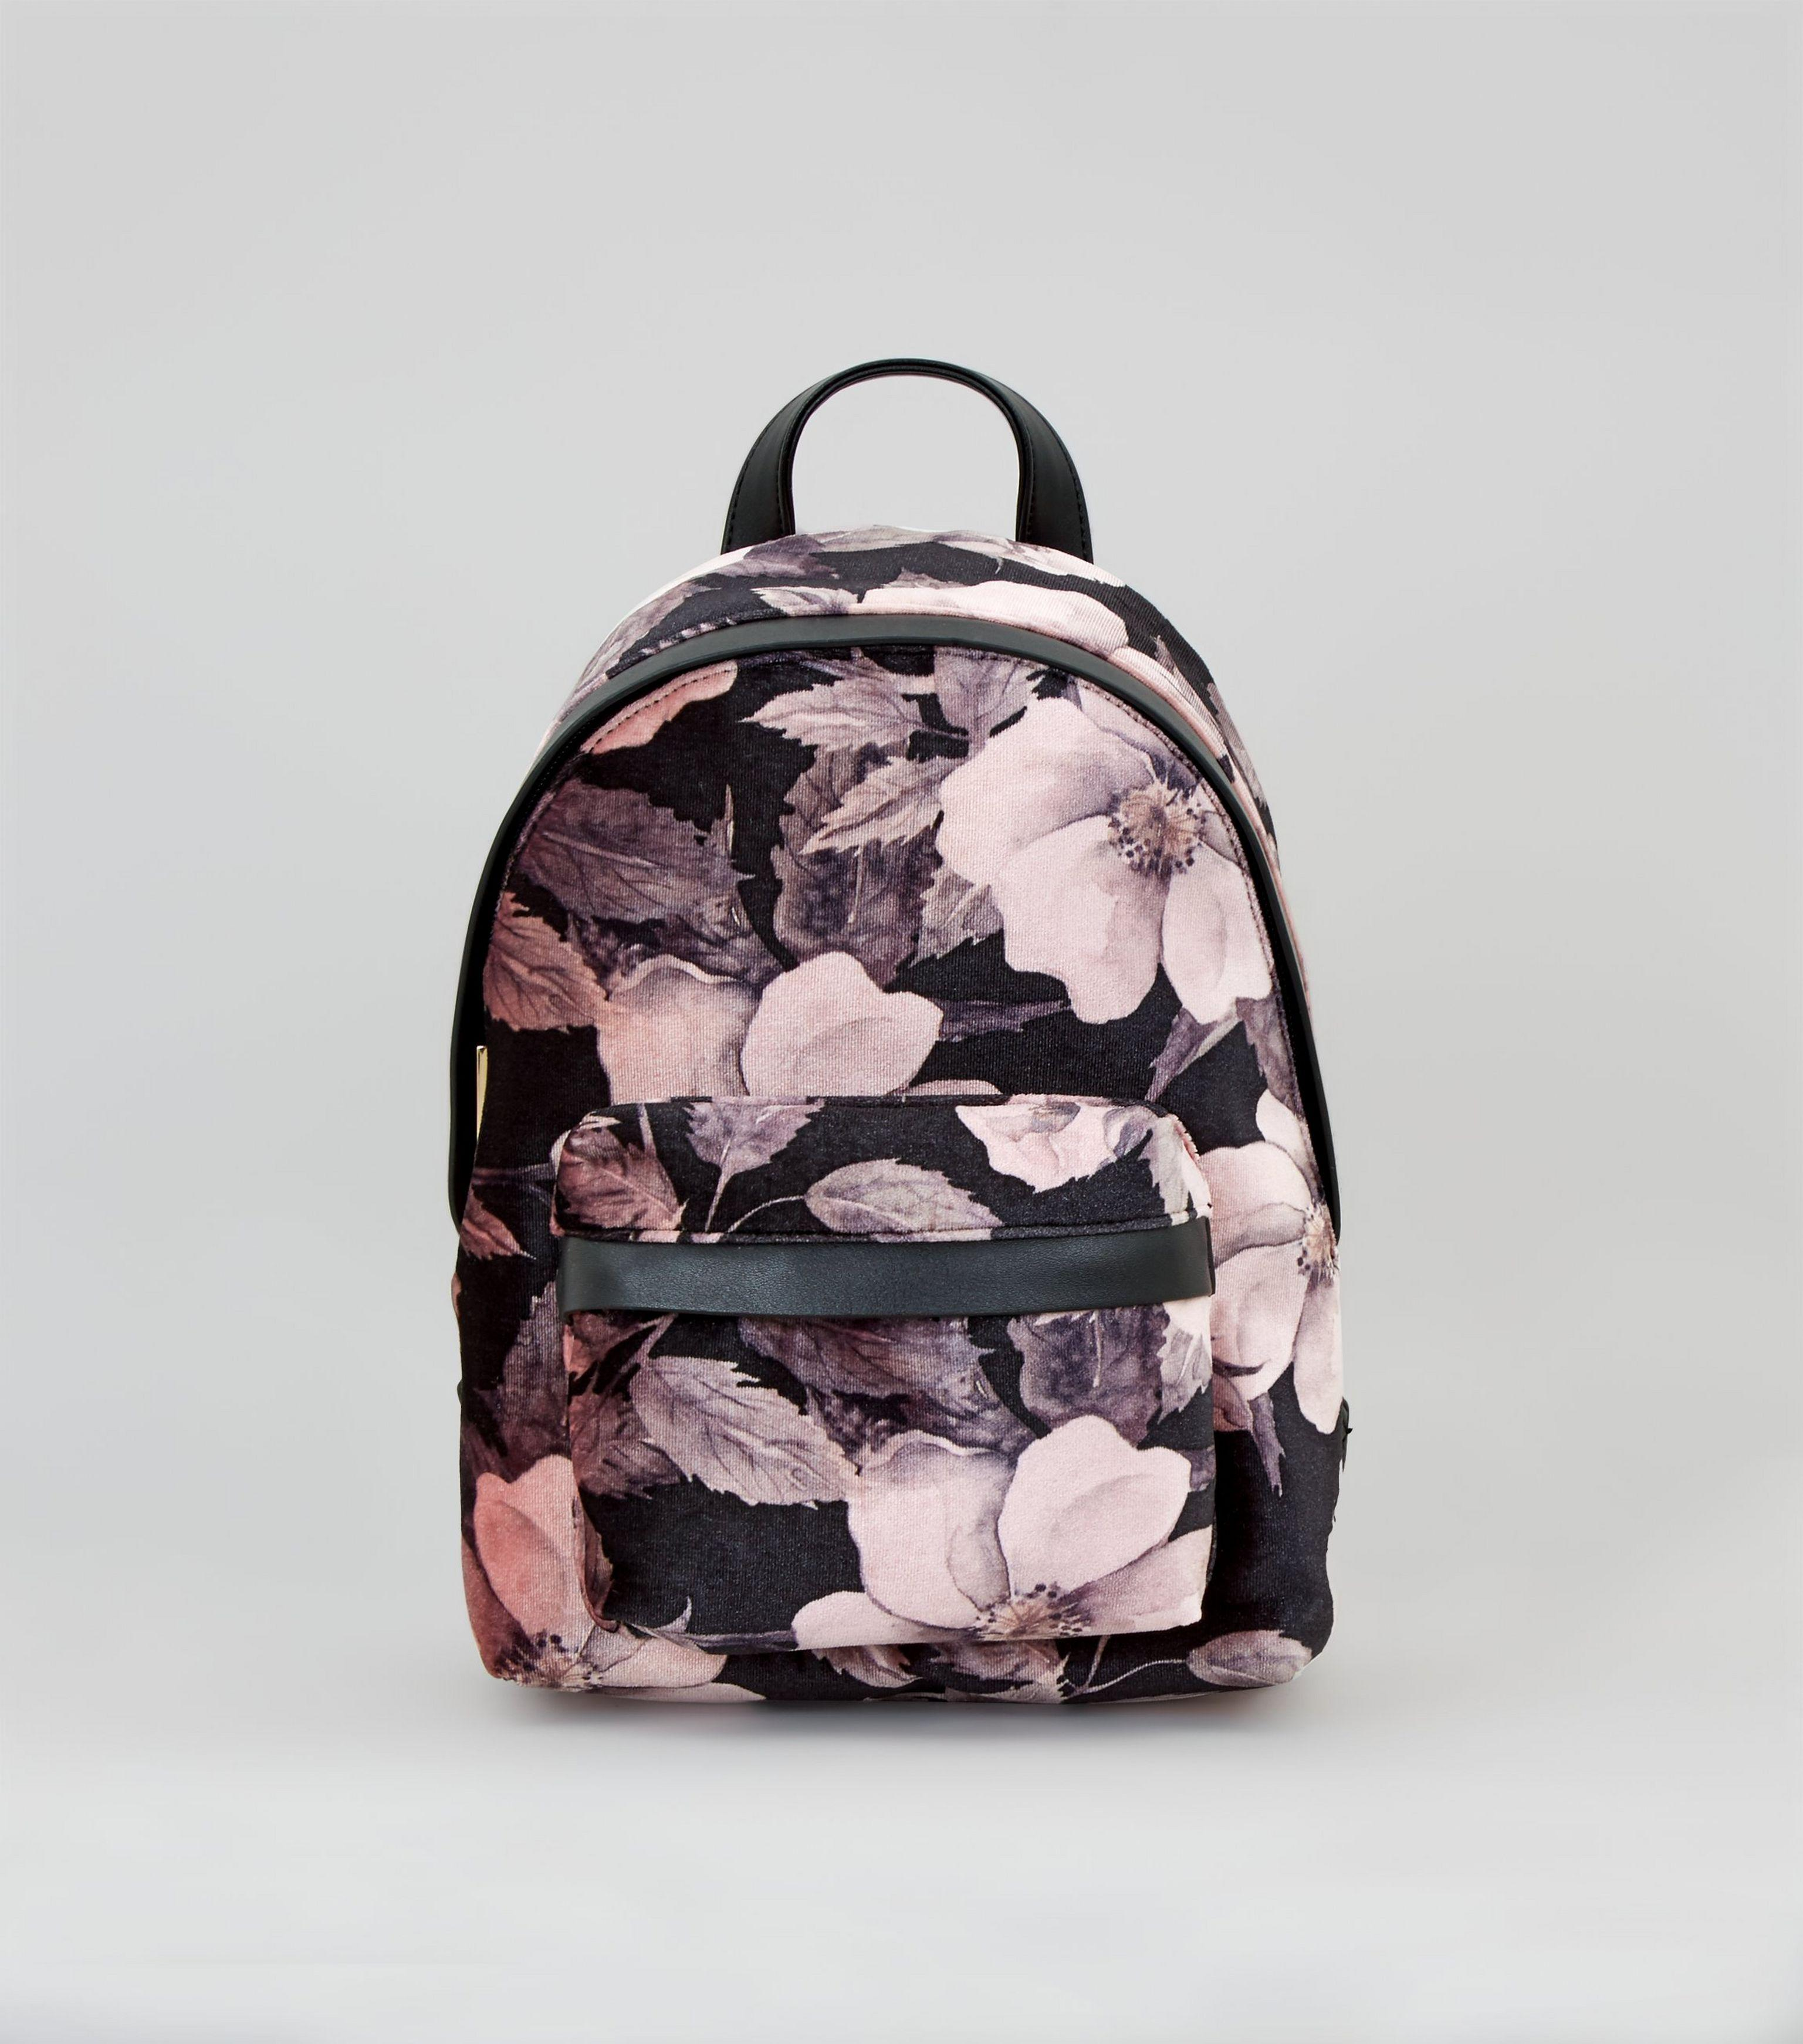 New Look Grey Floral Backpack - Swiss Paralympic